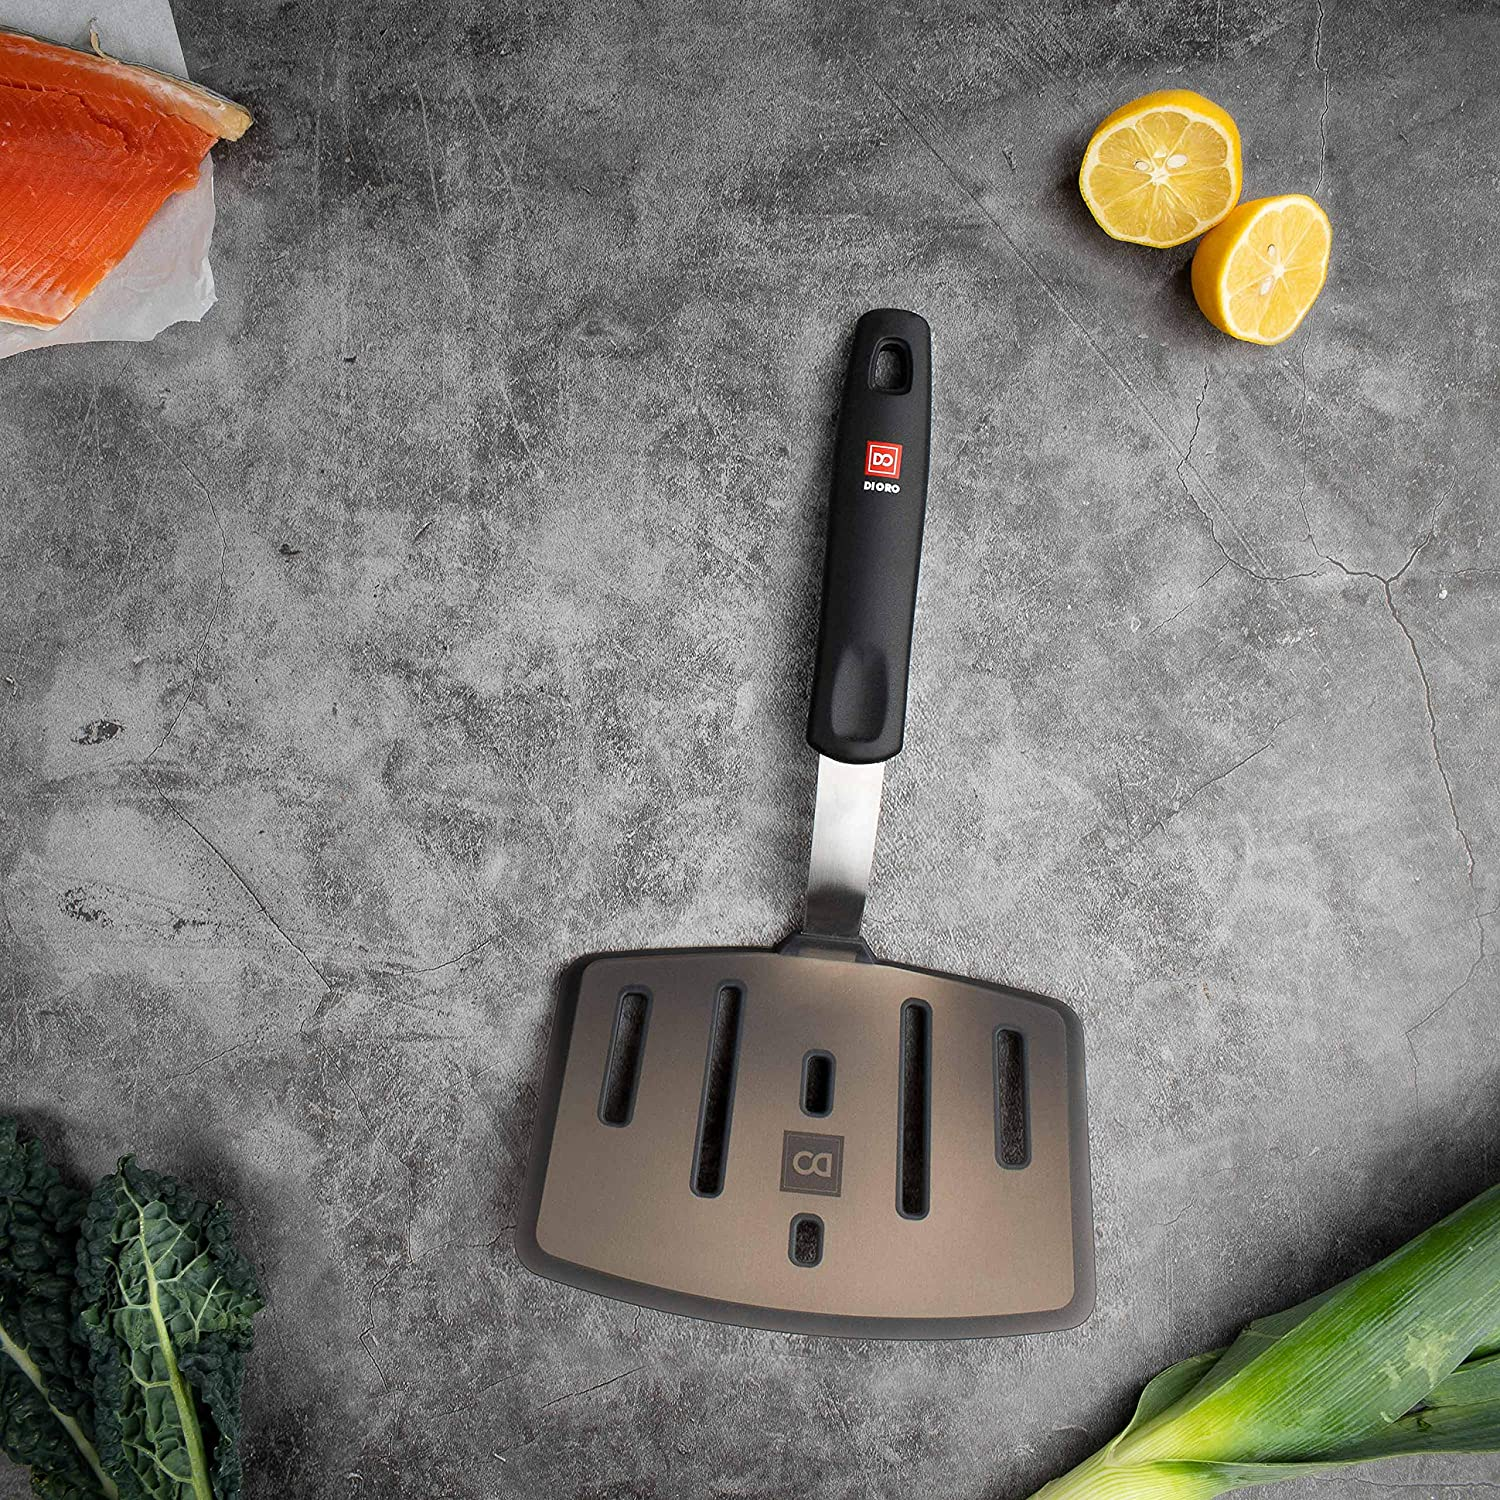 and Wide Slotted Turners New Di Oro Designer Series Elite 3-Piece Turner Spatula Set LFGB Certified and FDA Approved 600F Heat-Resistant Rubber Silicone Spatulas Includes Slotted Fish Omelet